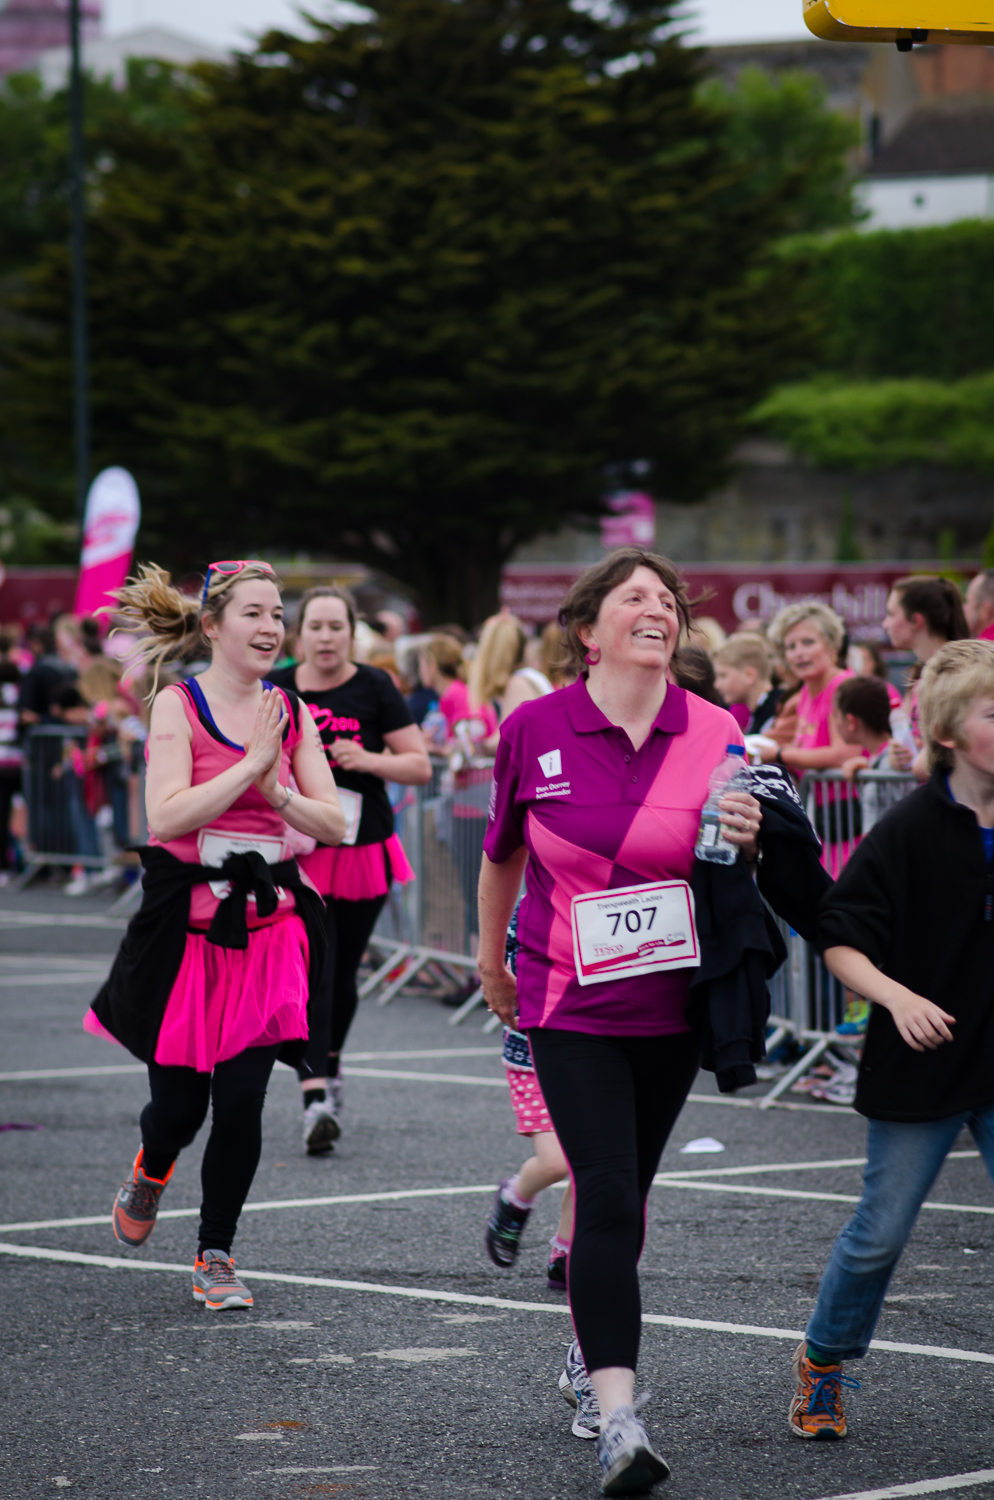 Race for life blog 2015-214.jpg